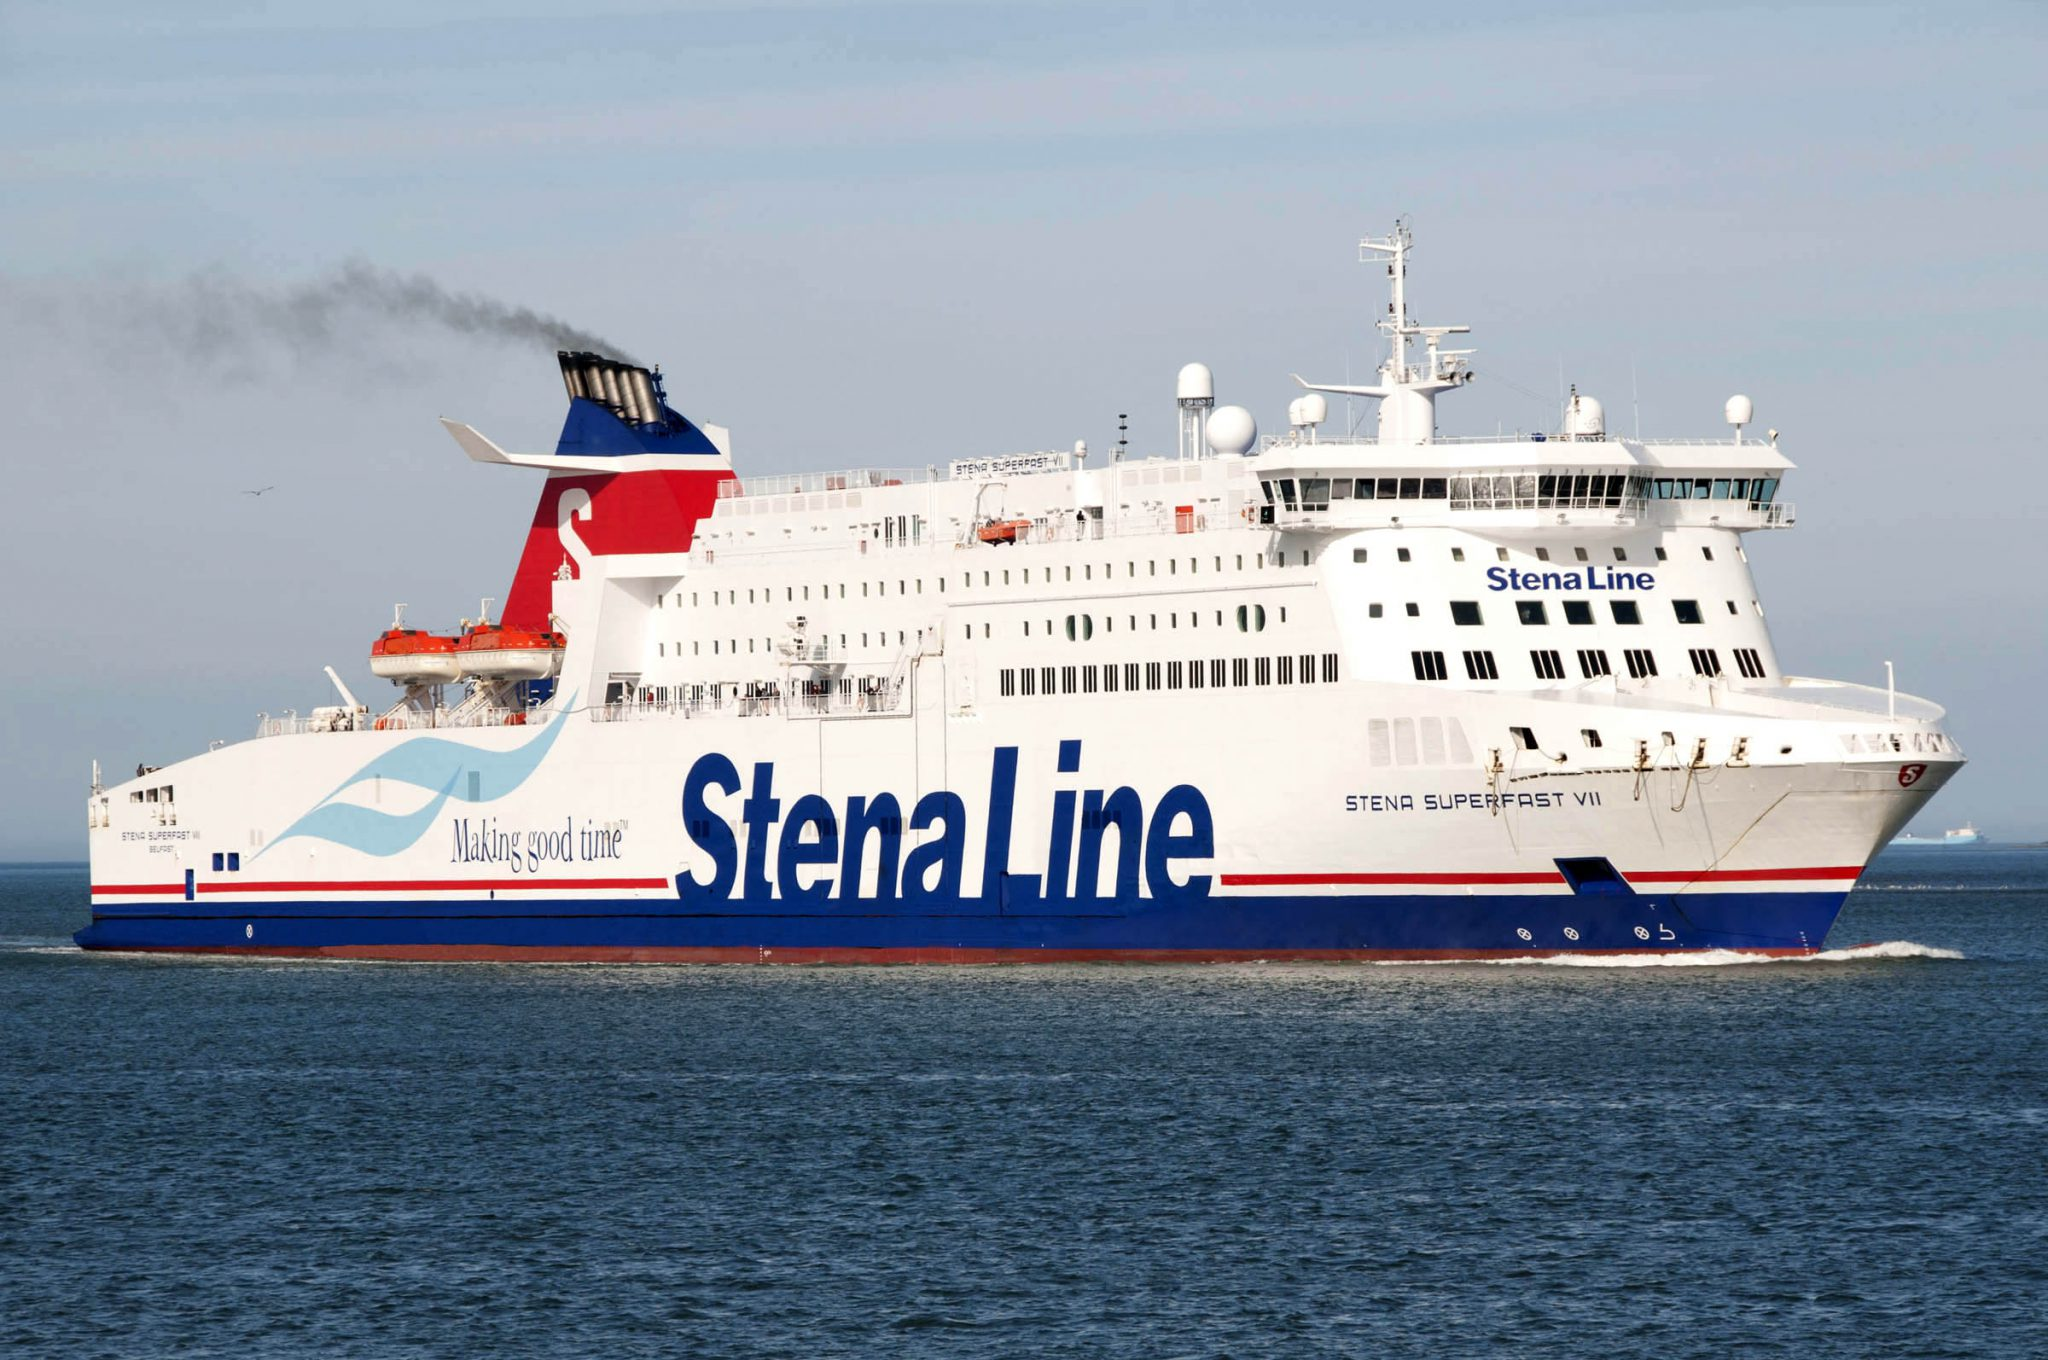 Stena Line plans to operate two fossil-free battery-powered vessels by 2025